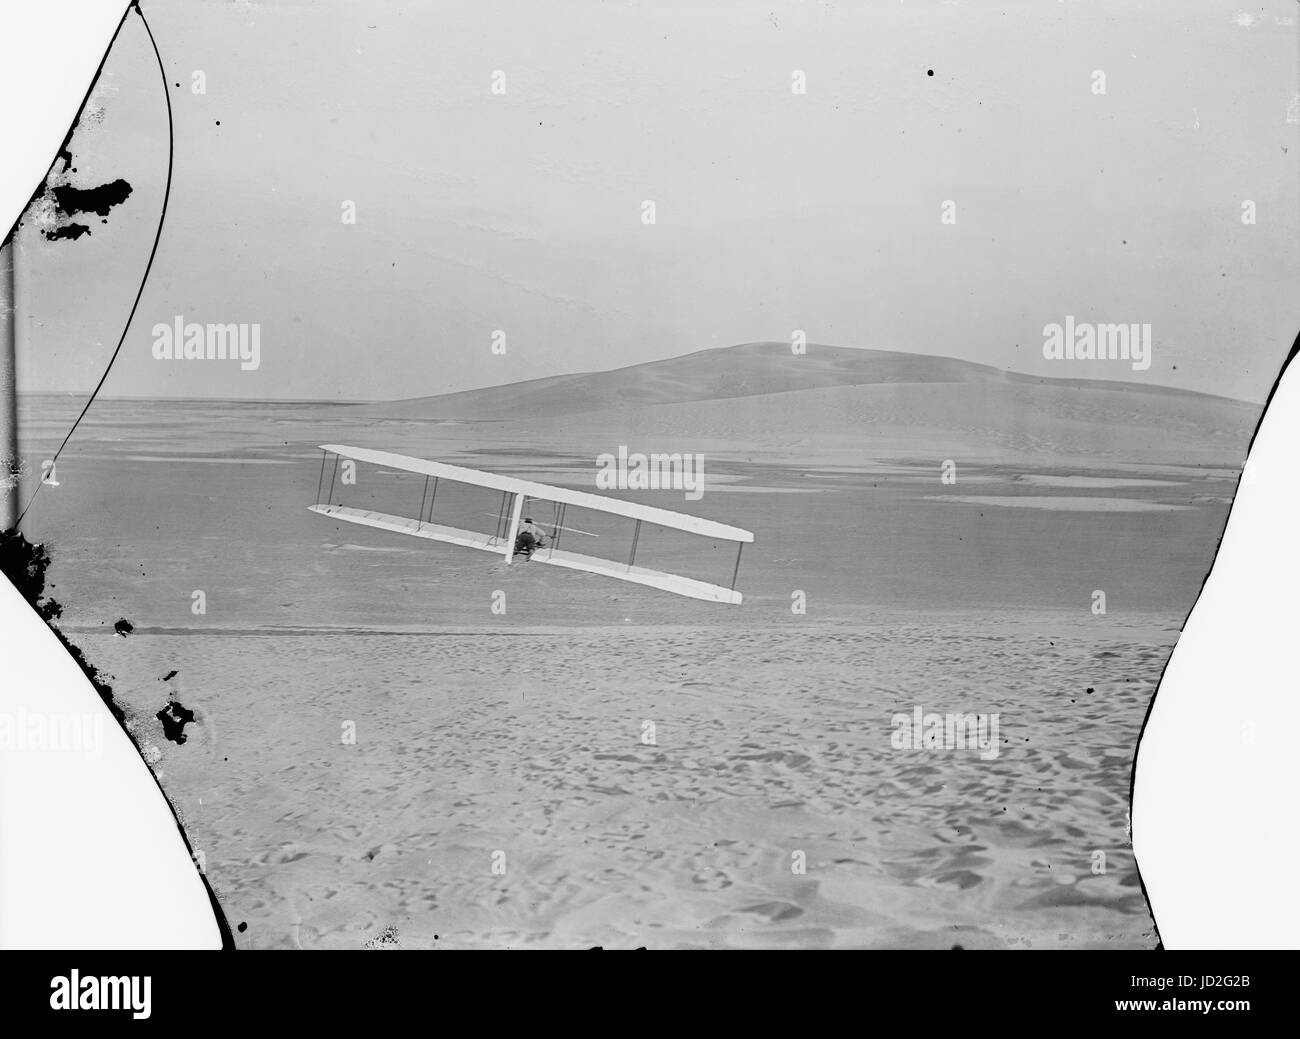 Rear view of Wilbur making a right turn in glide from No. 2 Hill, right wing tipped close to the ground. - Stock Image